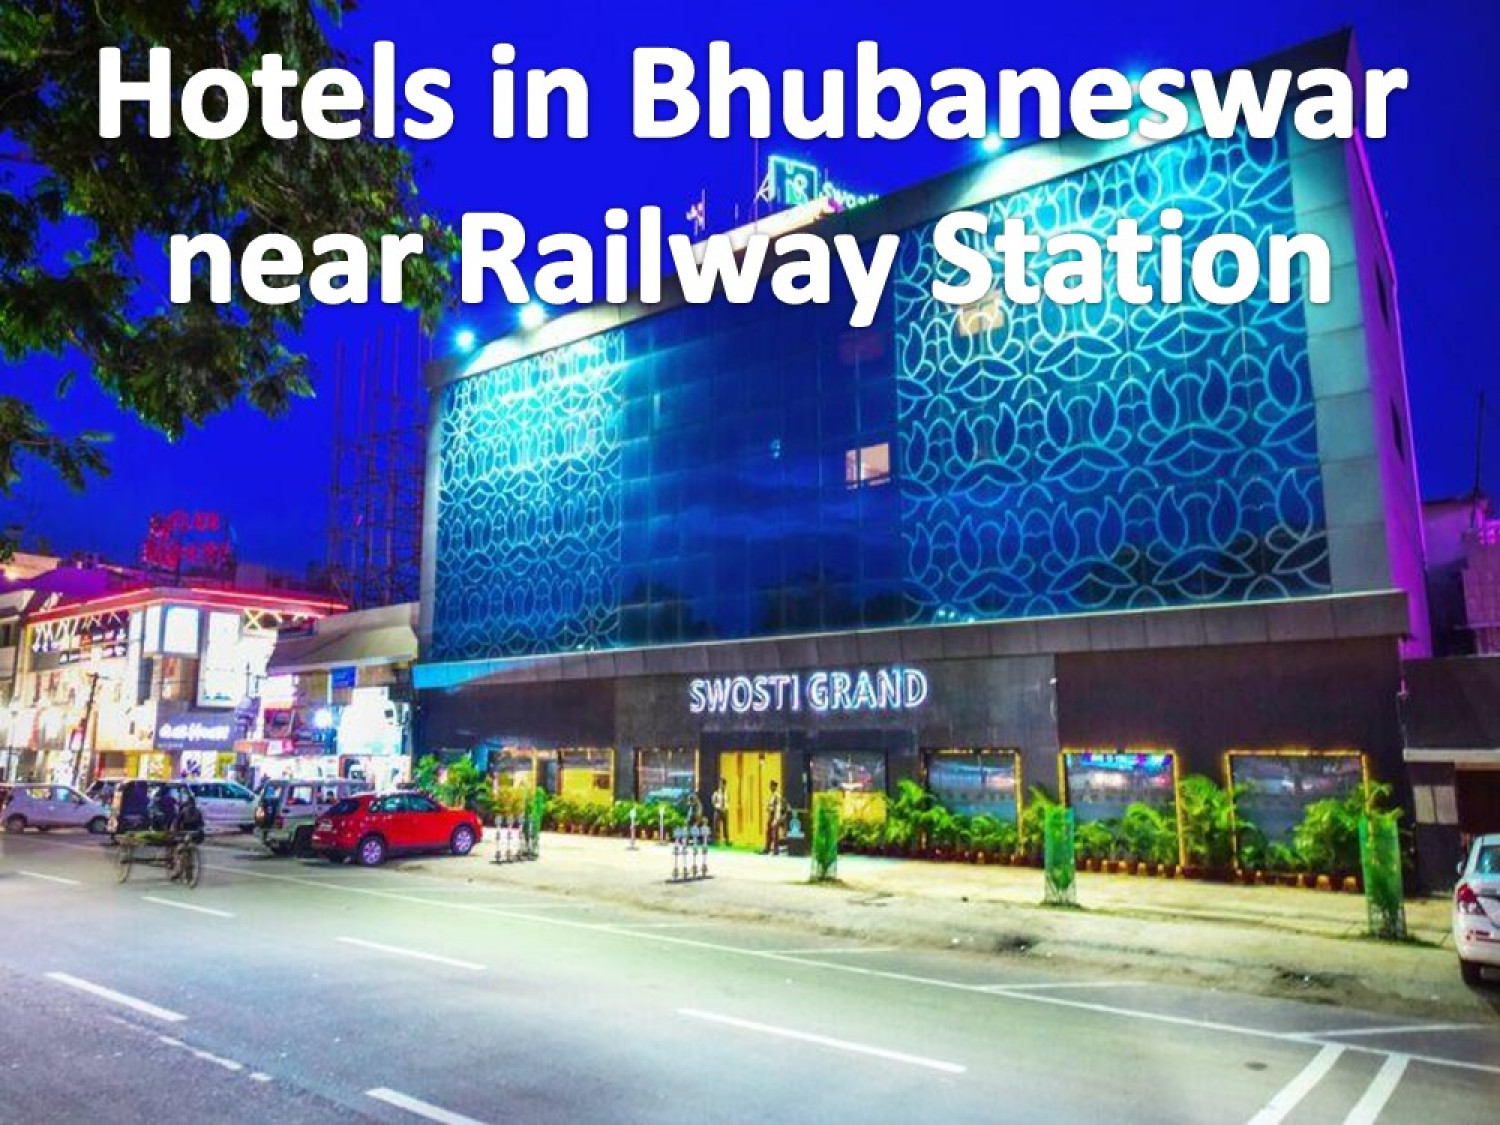 A Perfect Place to Spend Holidays Hotels in Bhubaneswar near Railway station Infographic